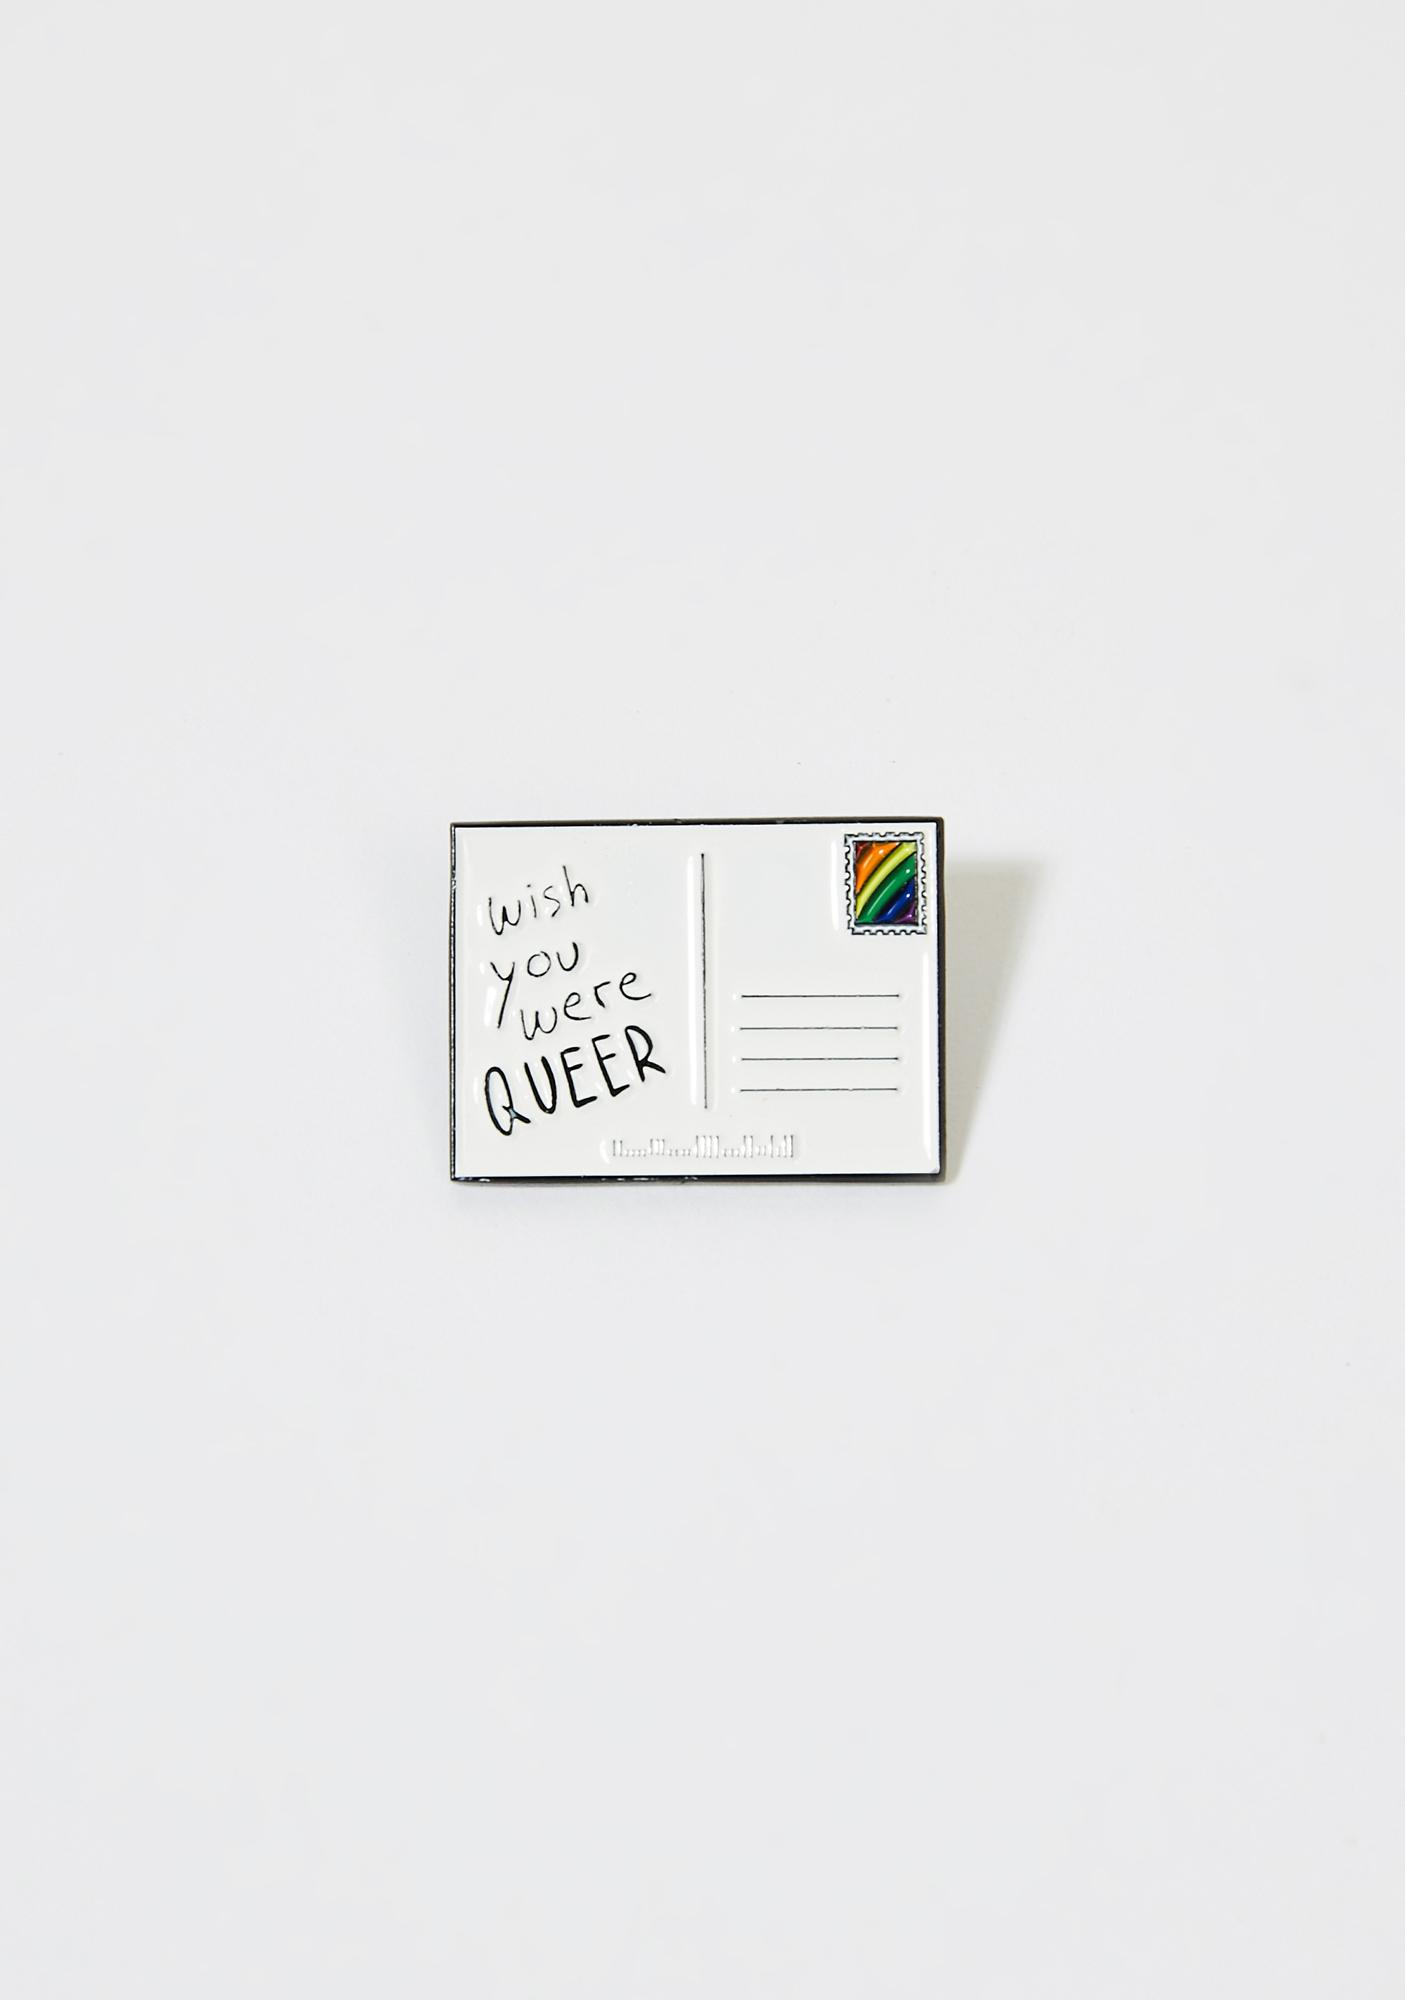 Ectogasm Wish You Were Queer Postcard Pin